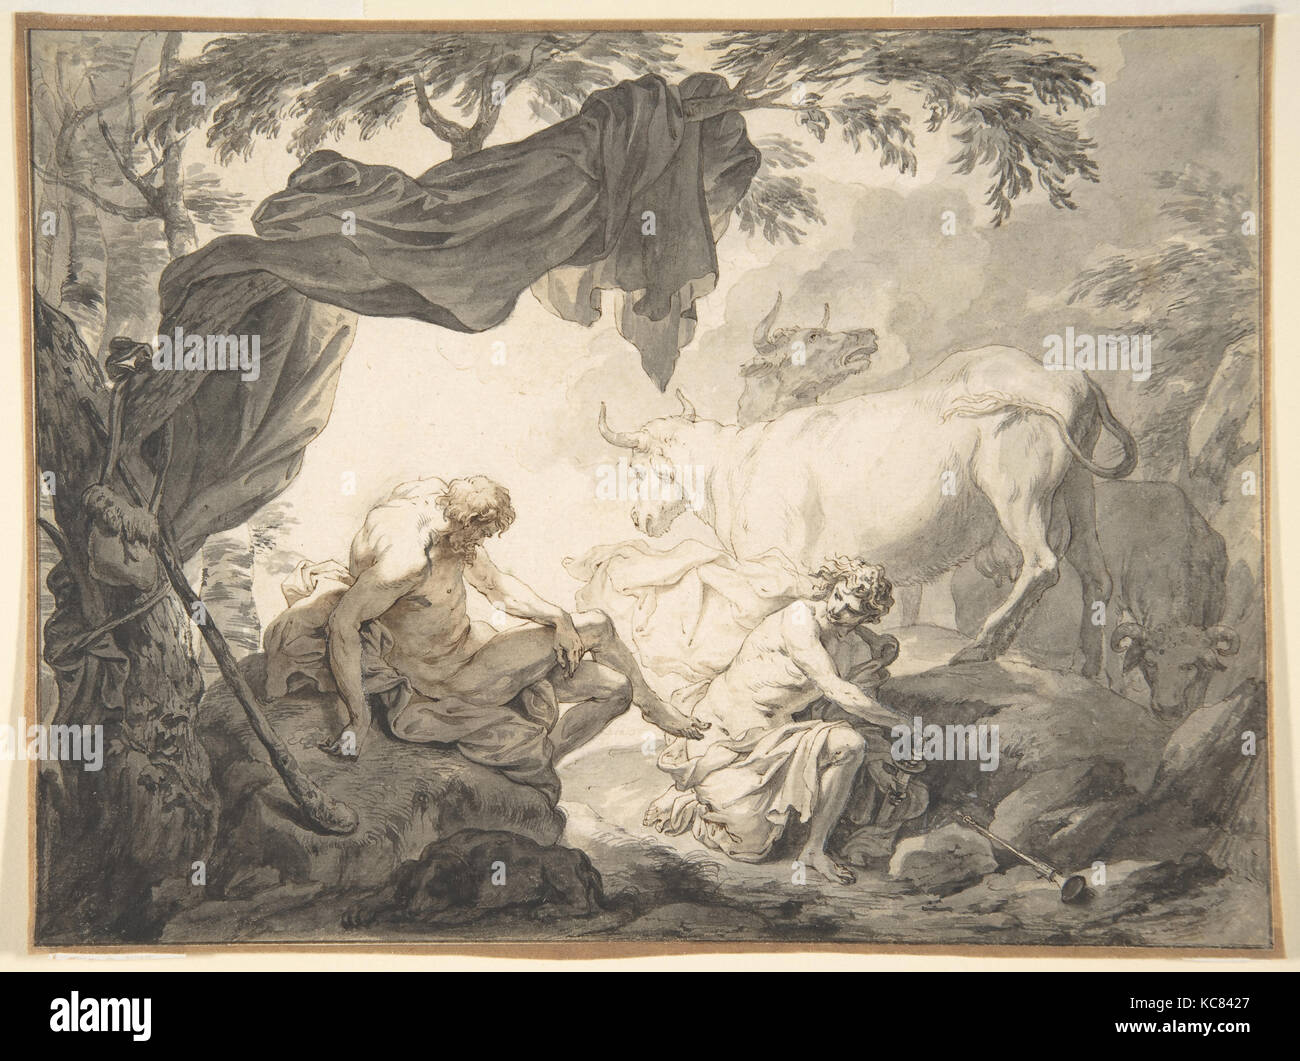 Illustrations to the Metamorphoses of Ovid: Jupiter and Io (.1); Jupiter and Io, disguised as a white beifer - Stock Image